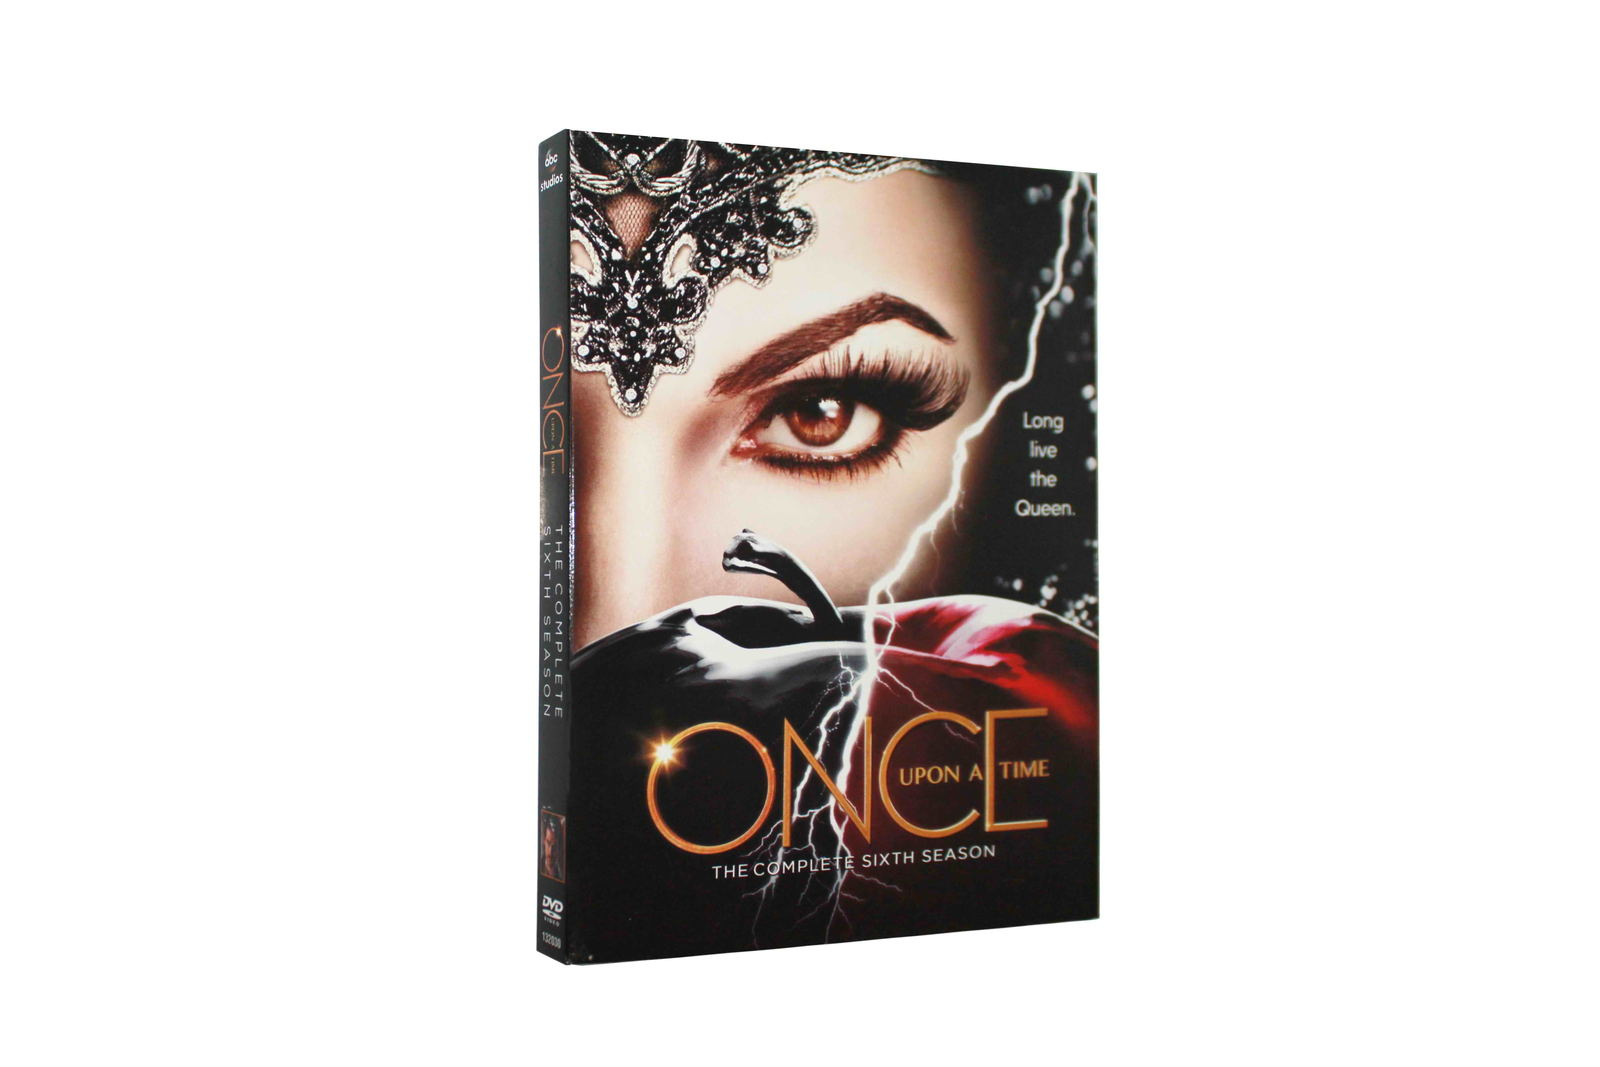 Once Upon a Time The Complete Series Season 6 DVD Box Set 5 Disc Free Shipping